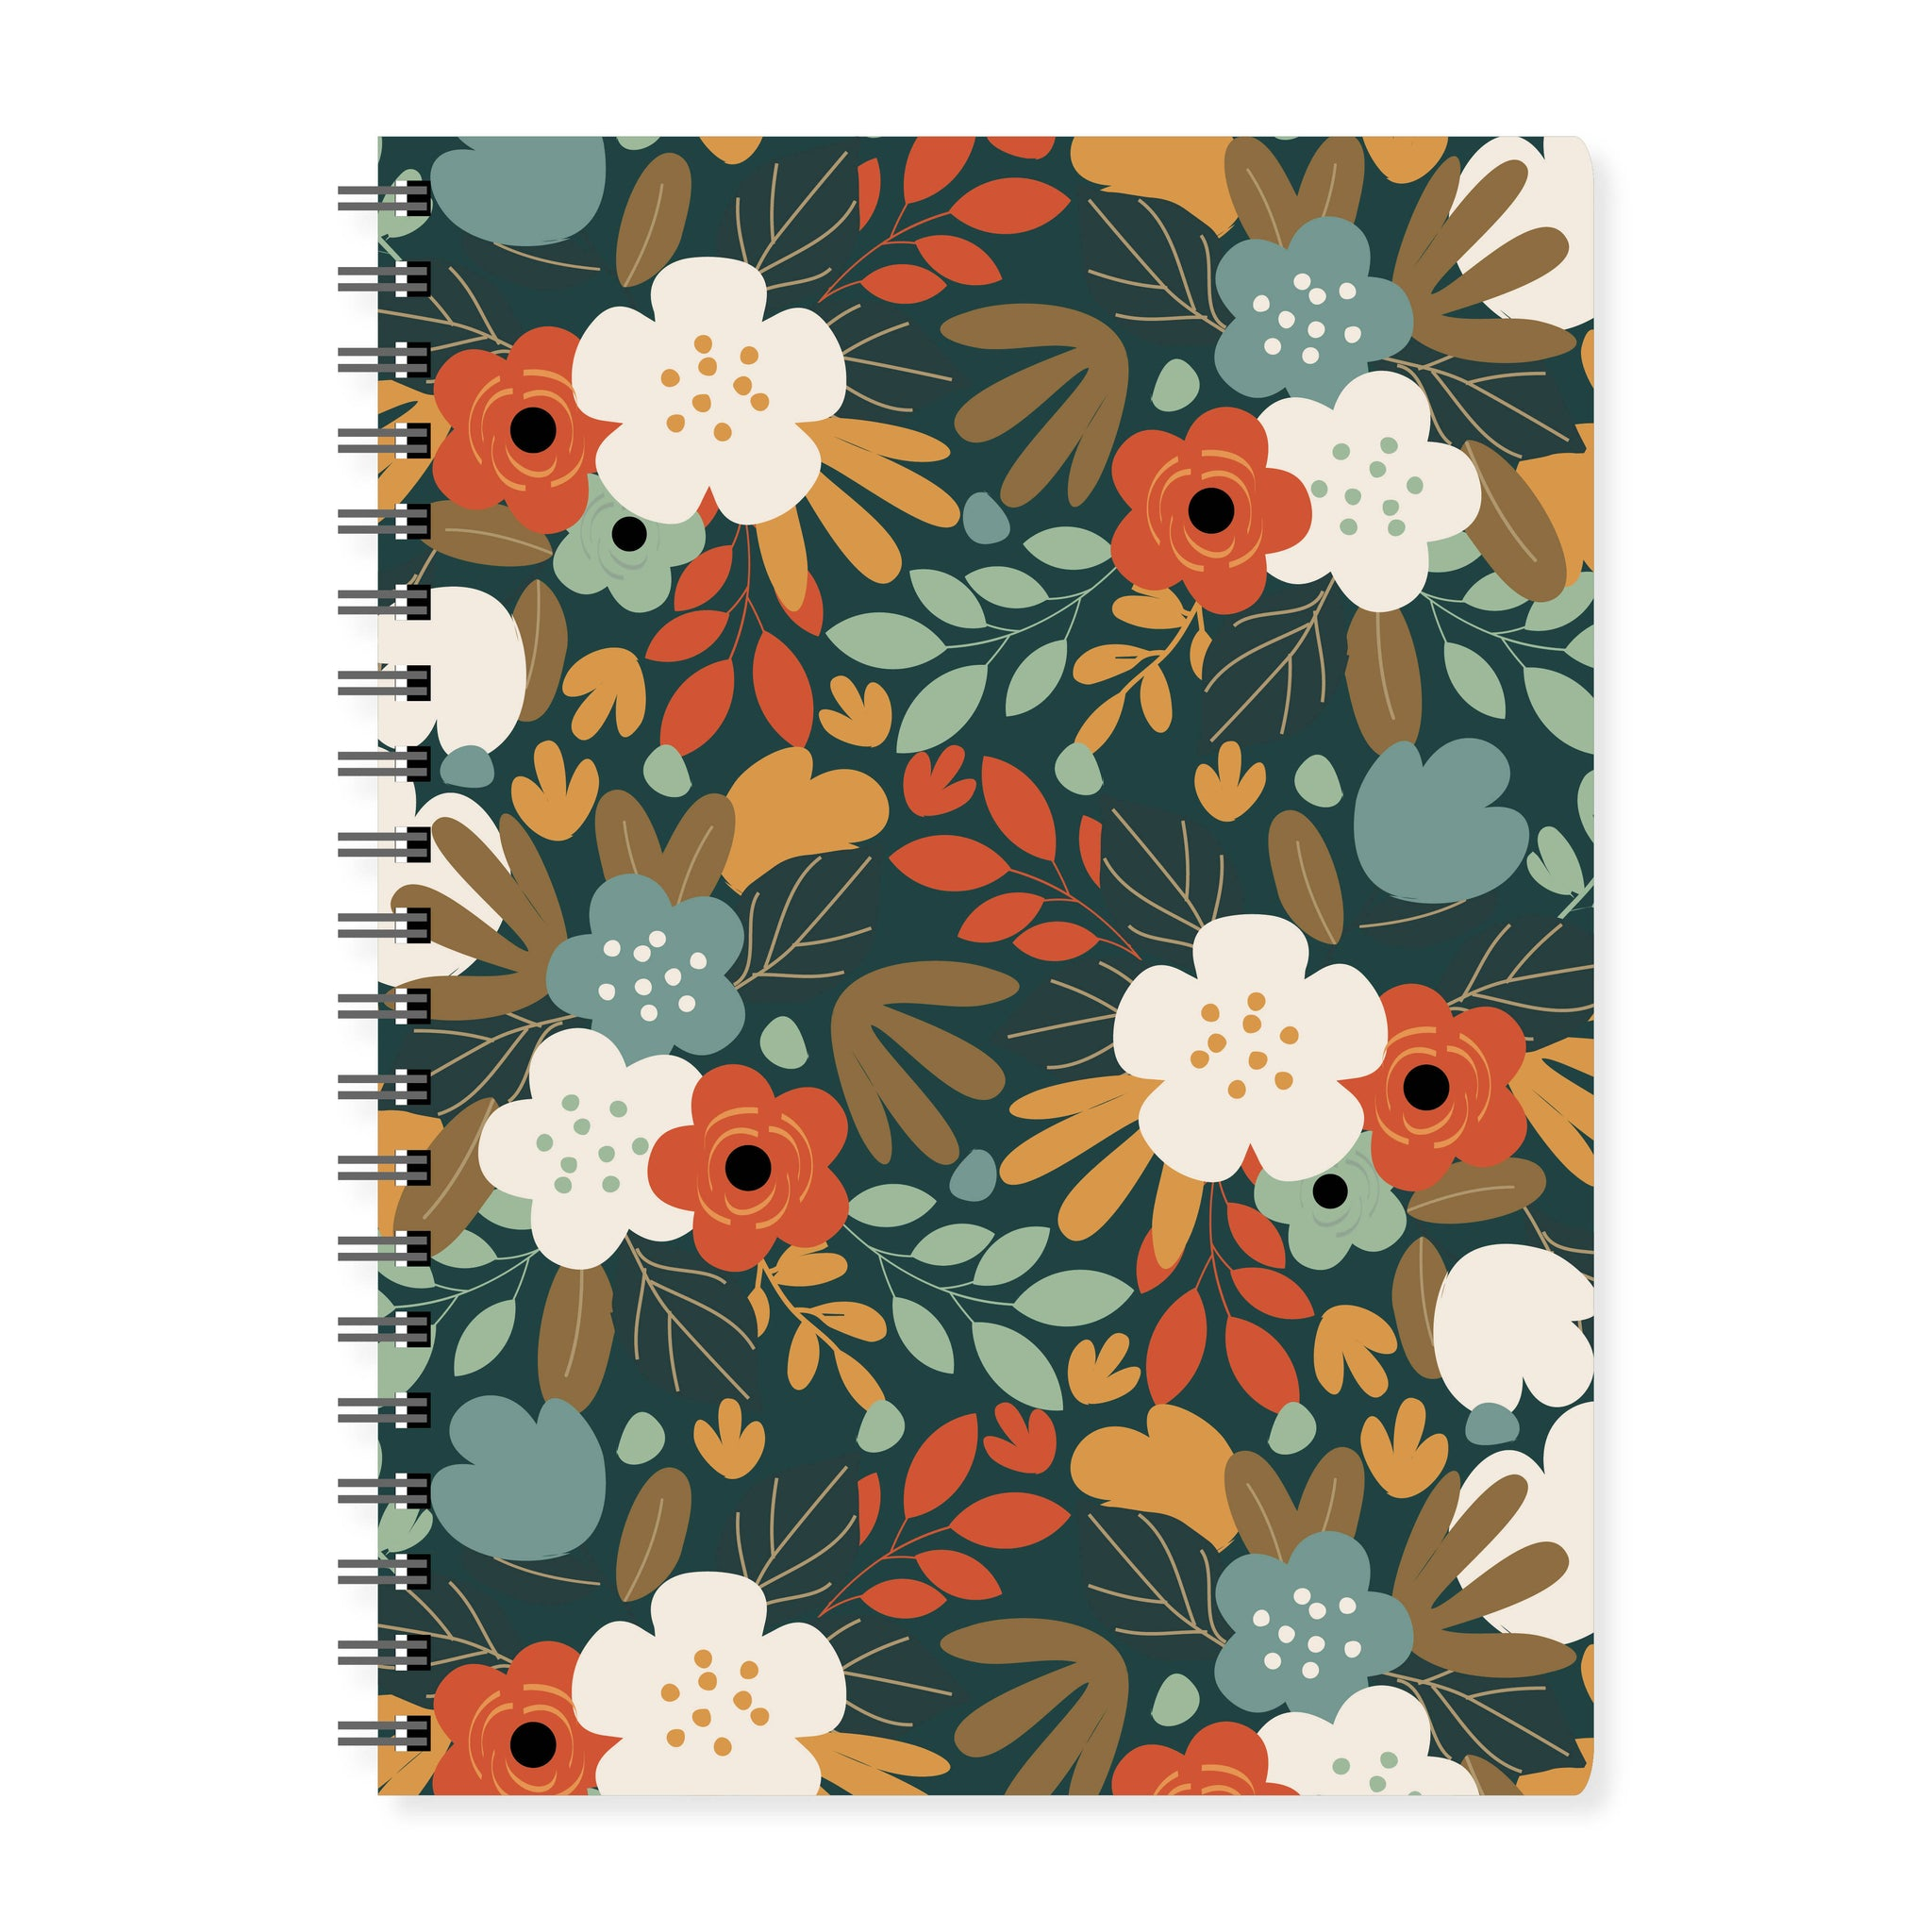 Autumn Floral Notebook - The Print Route